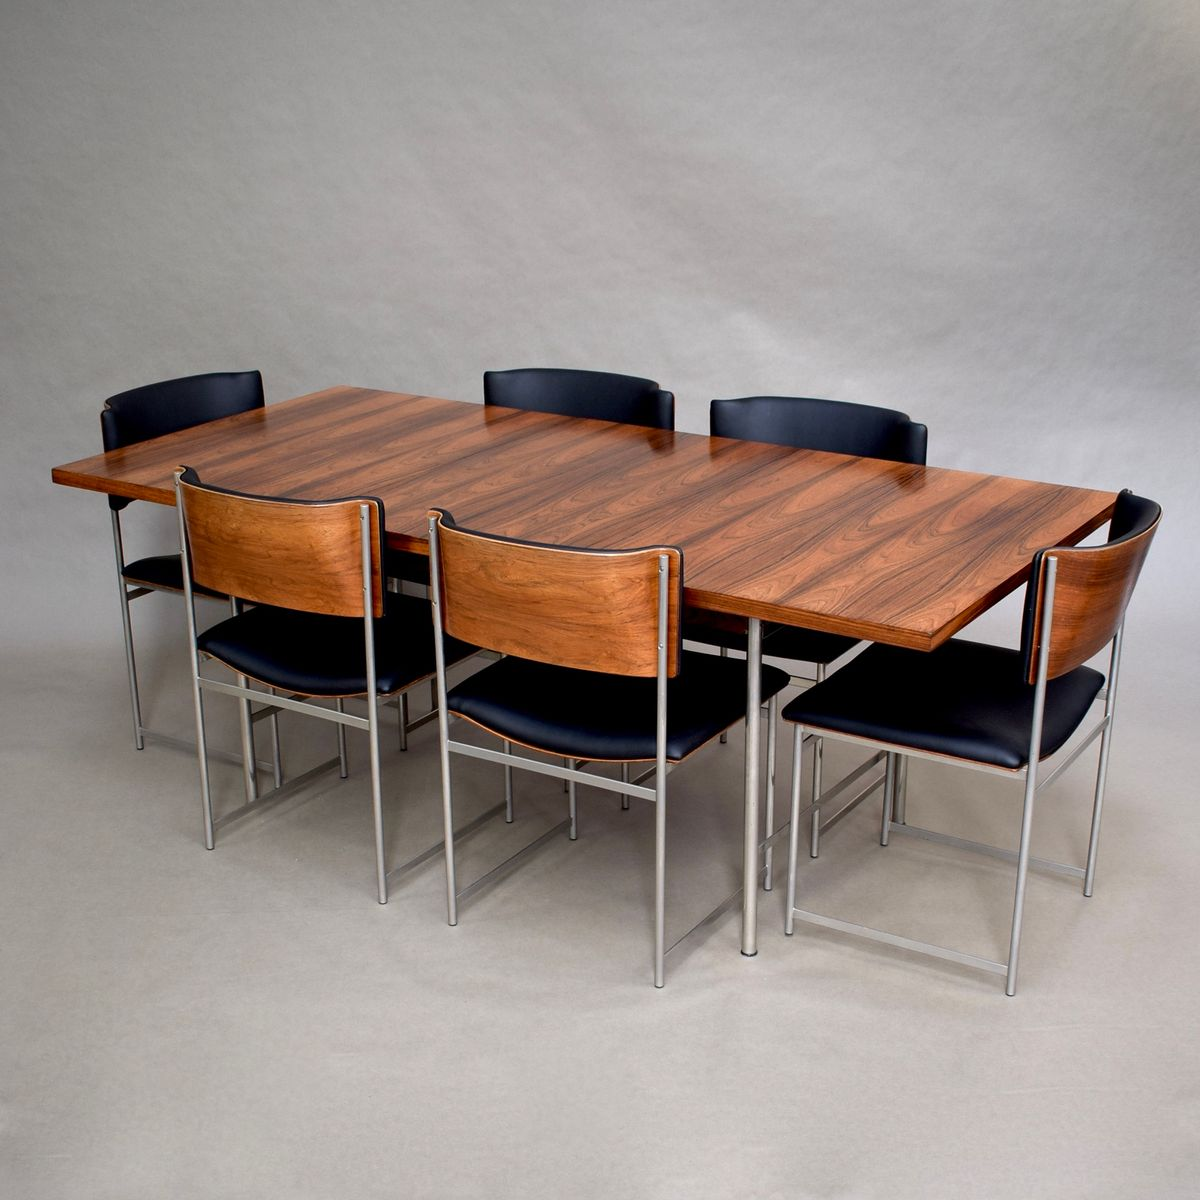 Brazilian Rosewood SM08 Dining Set By Cees Braakman For Pastoe, 1950s